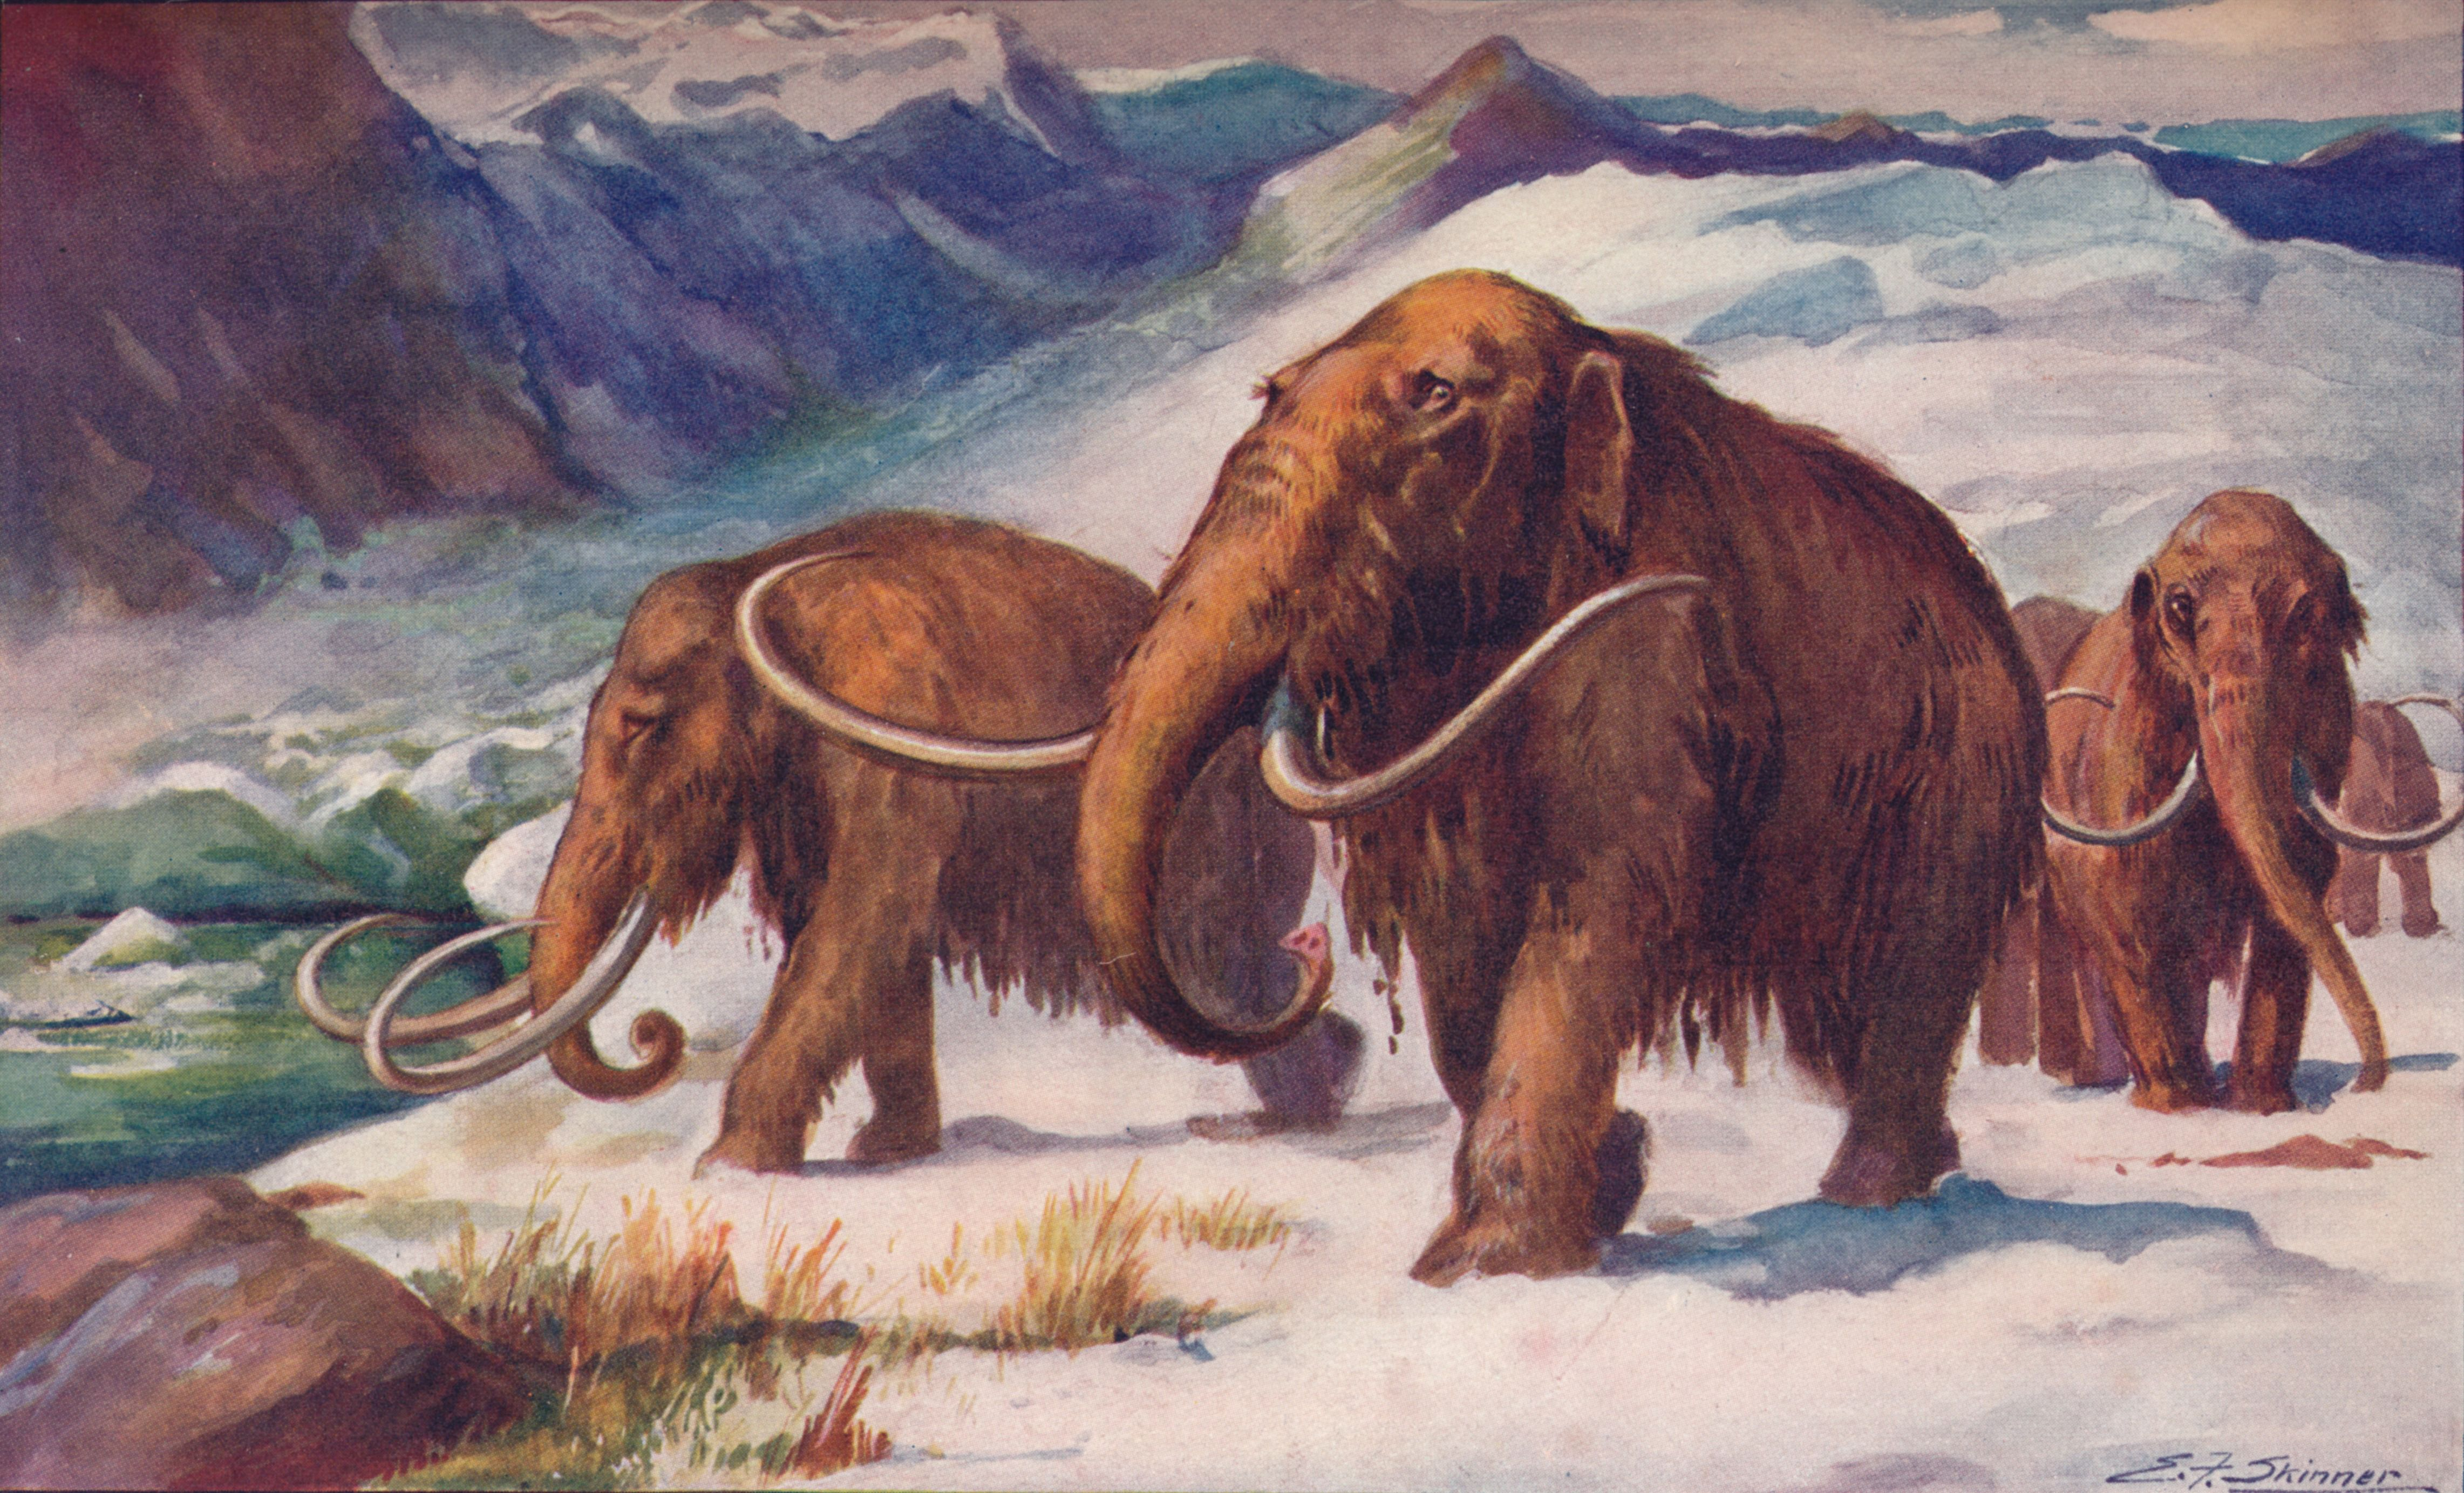 How the woolly mammoth extinction took place on remote